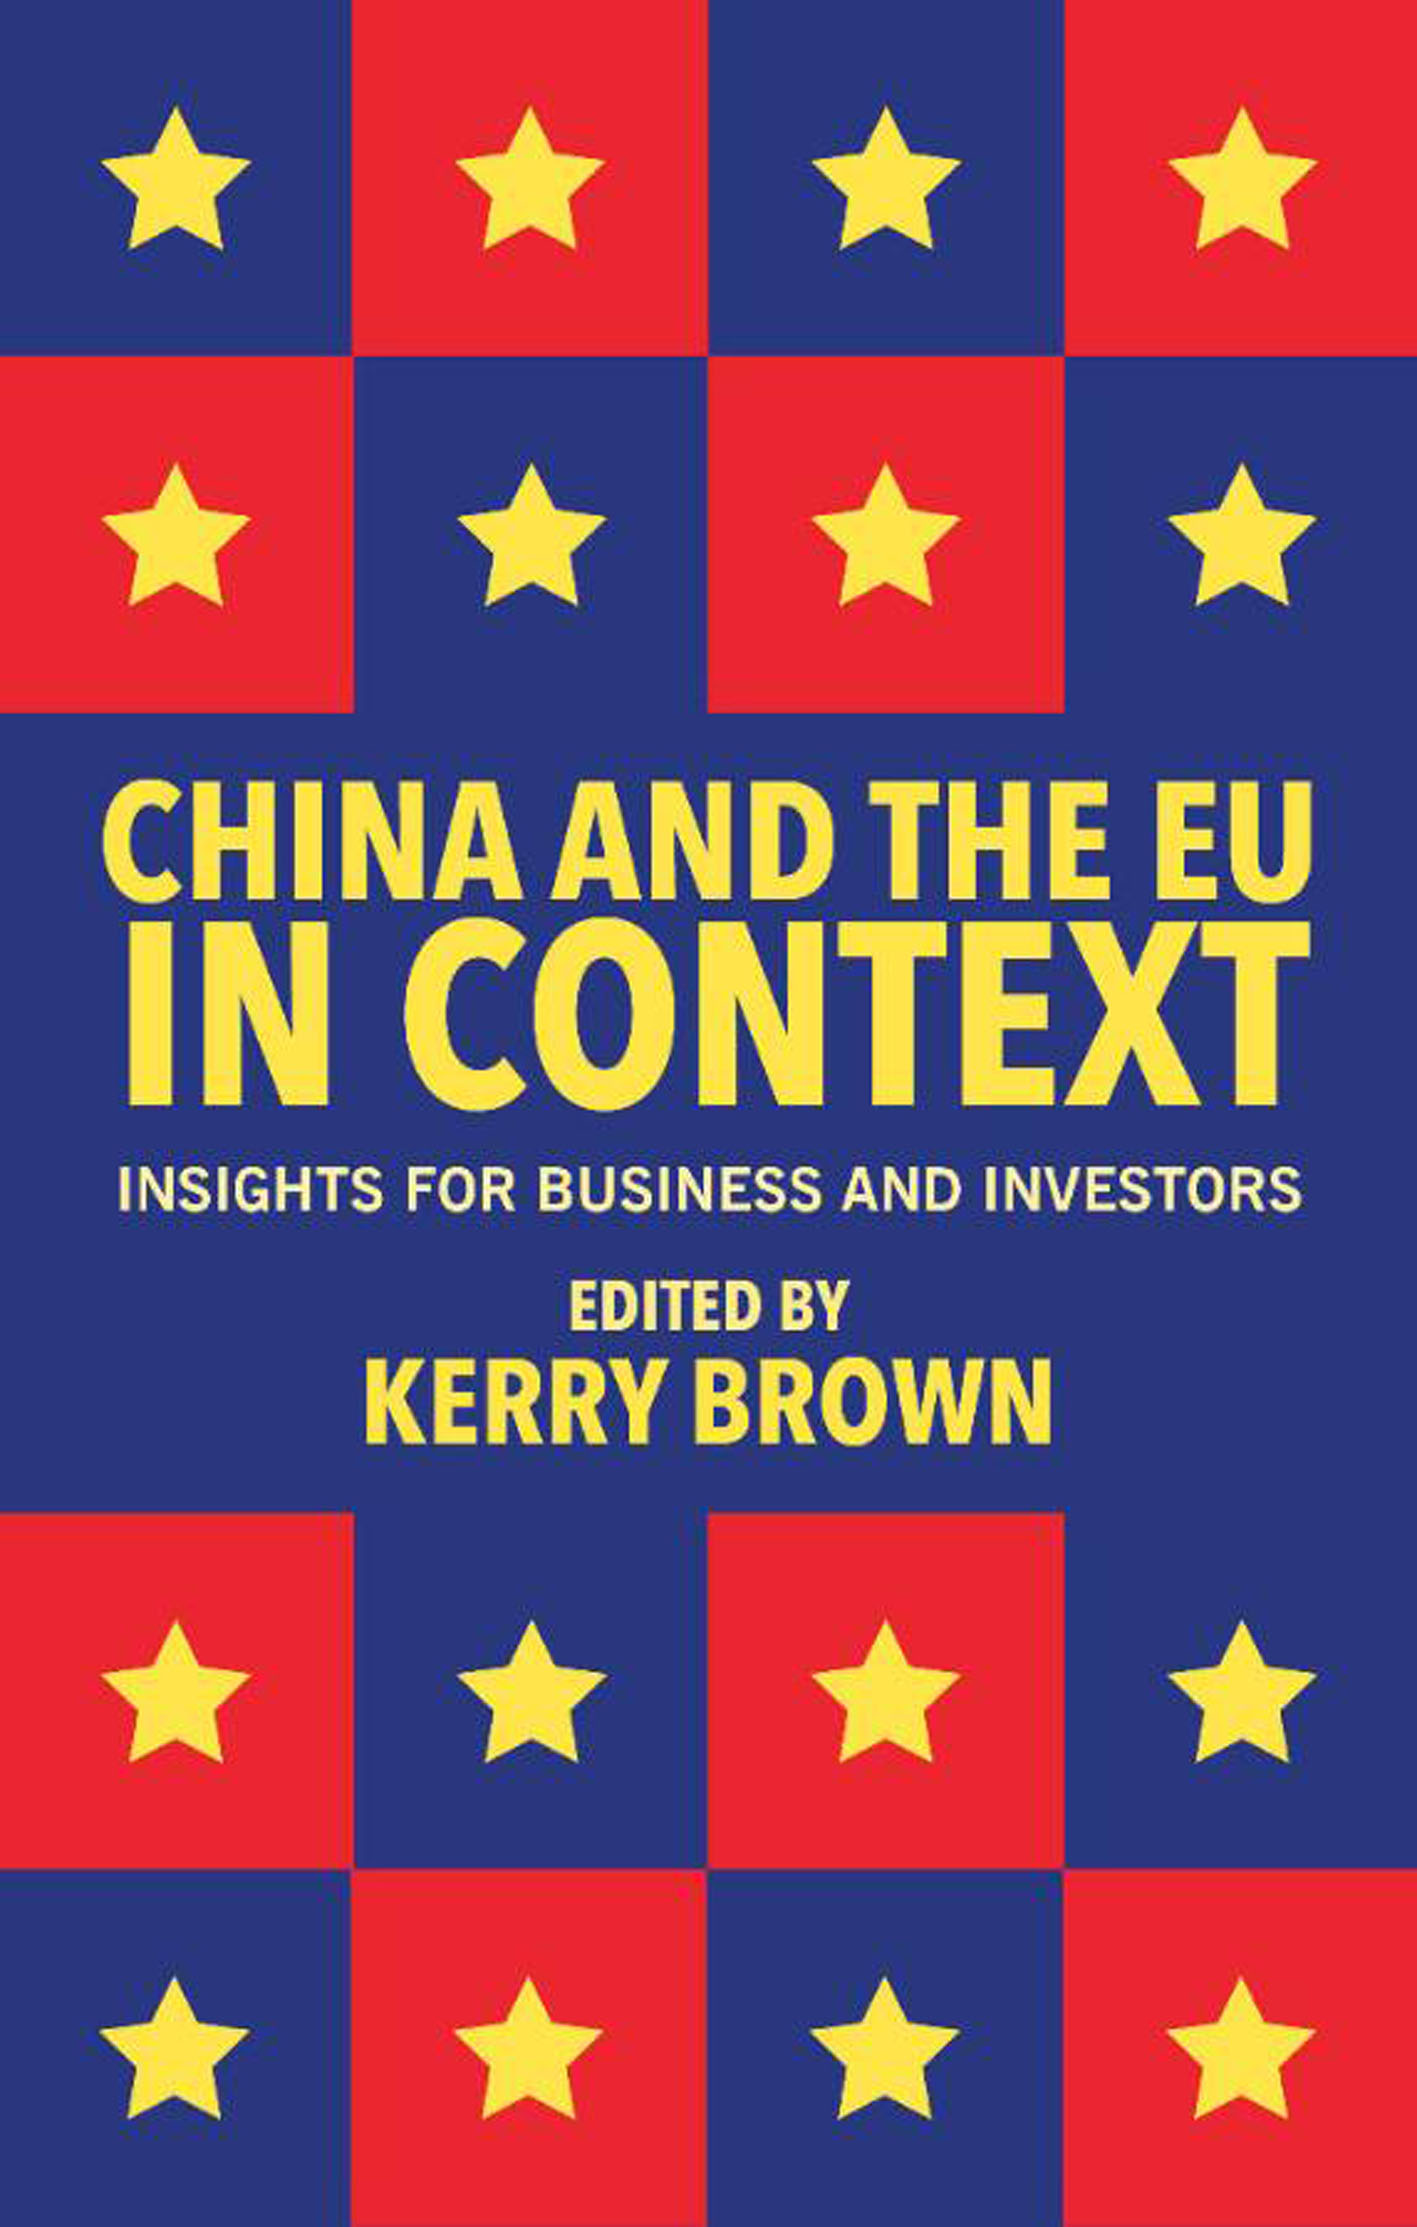 Download Ebook China and the EU in Context by Kerry Brown Pdf